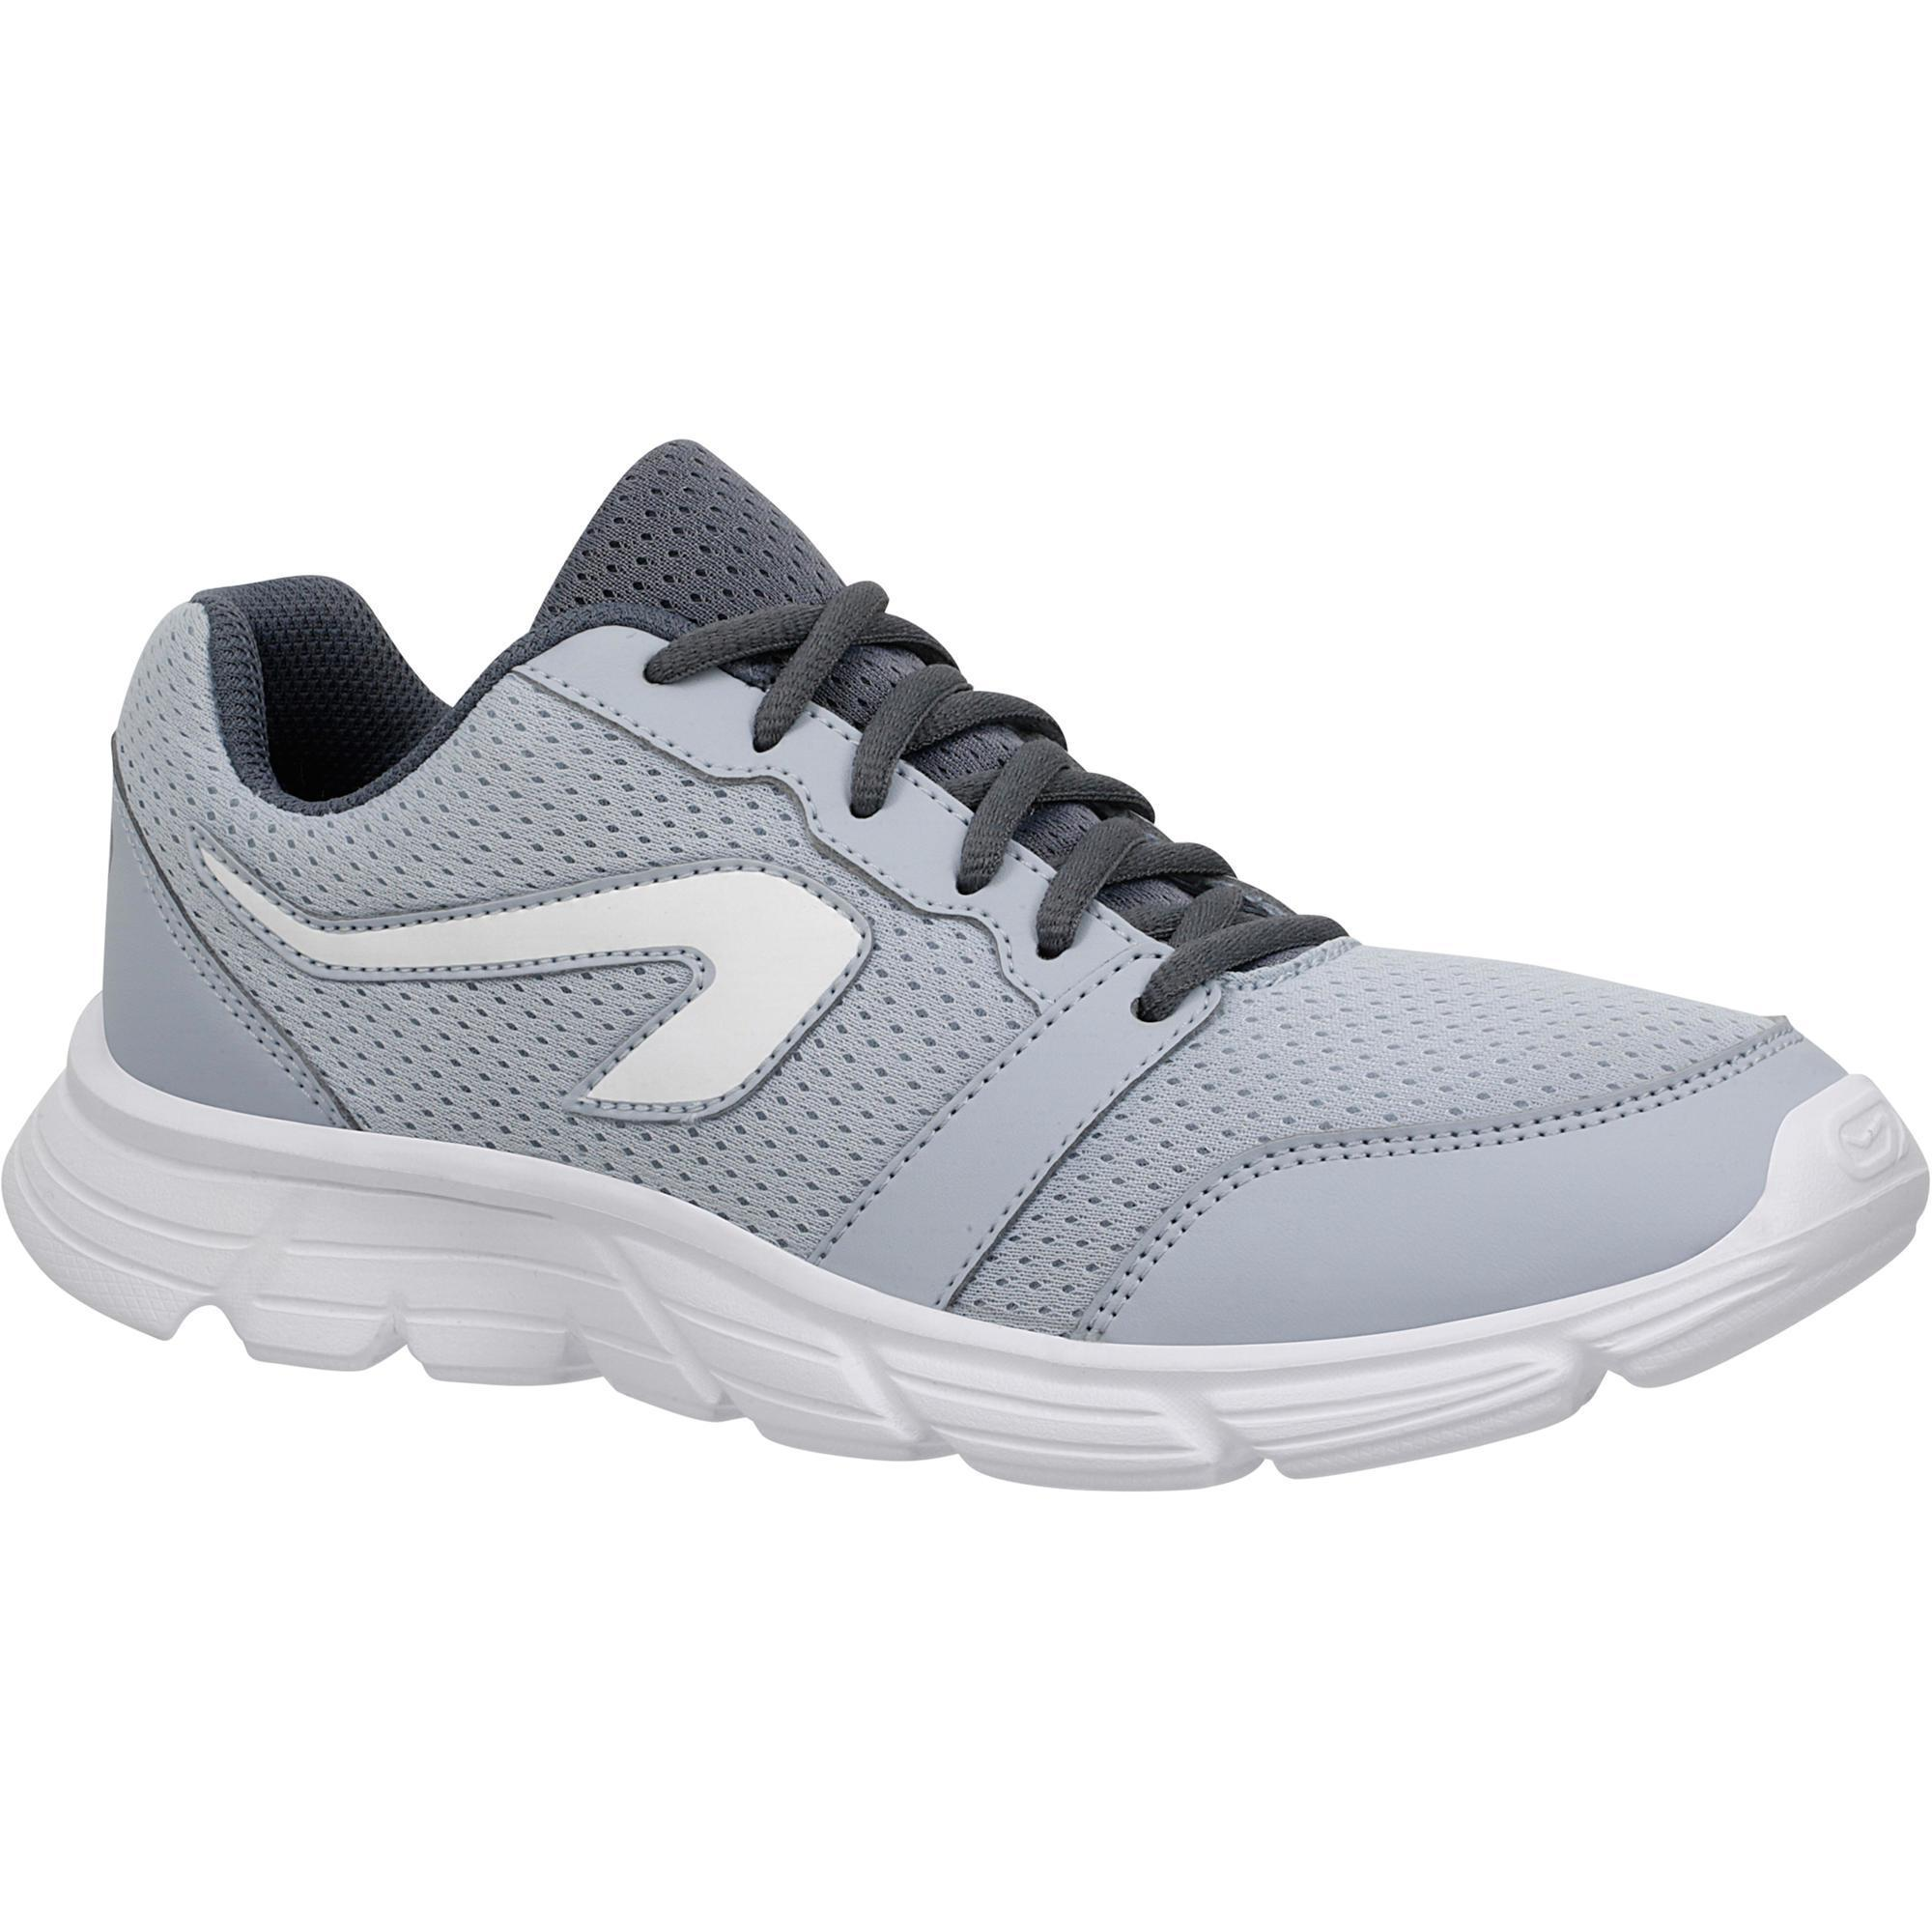 Chaussures et baskets running | DECATHLON